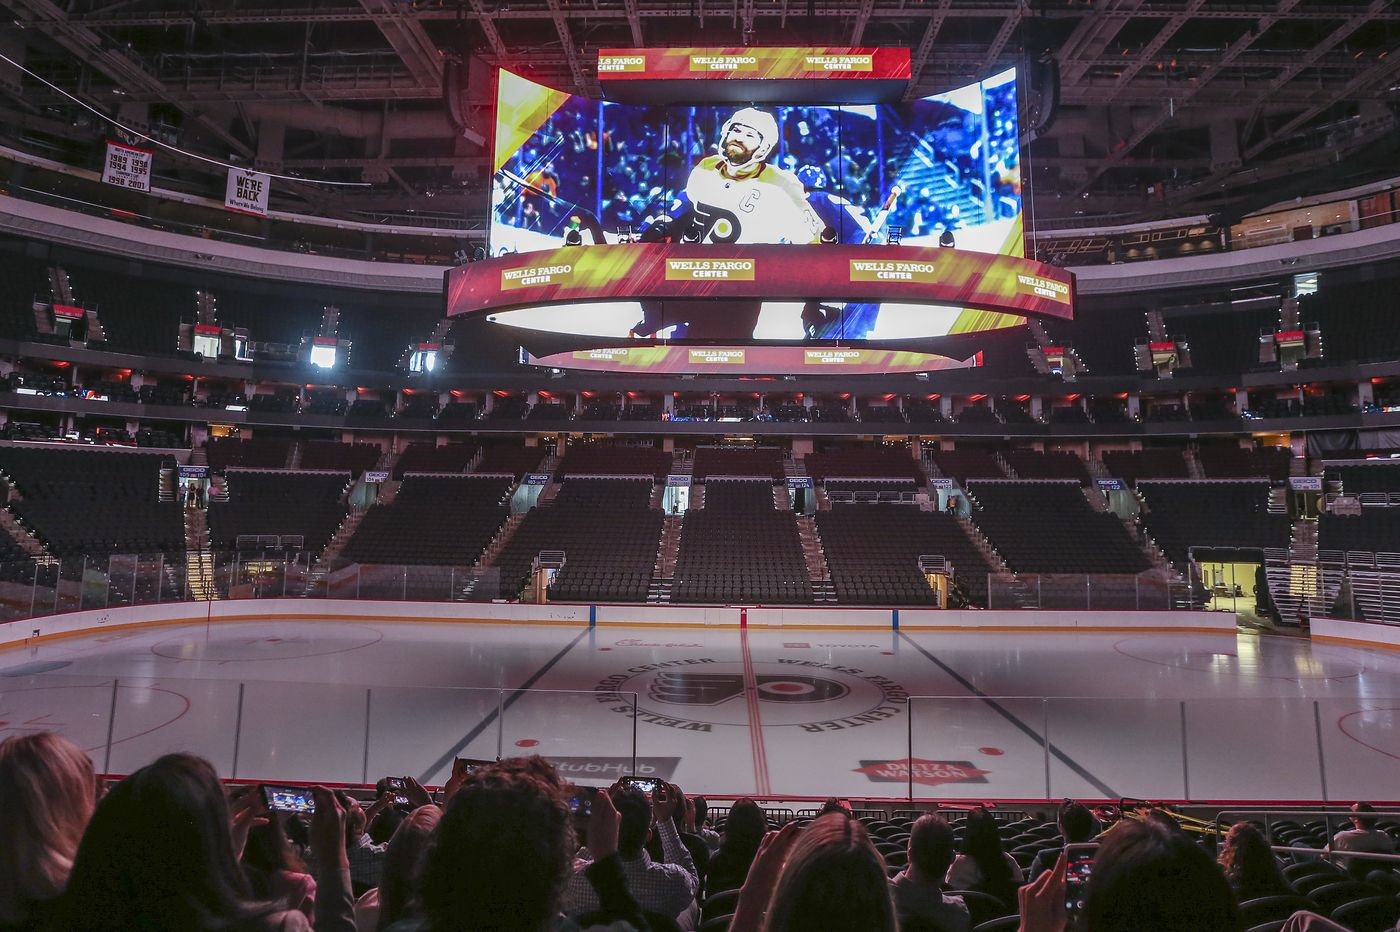 New Kinetic 4K Scoreboard, Center City Club, unveiled at Wells Fargo Center